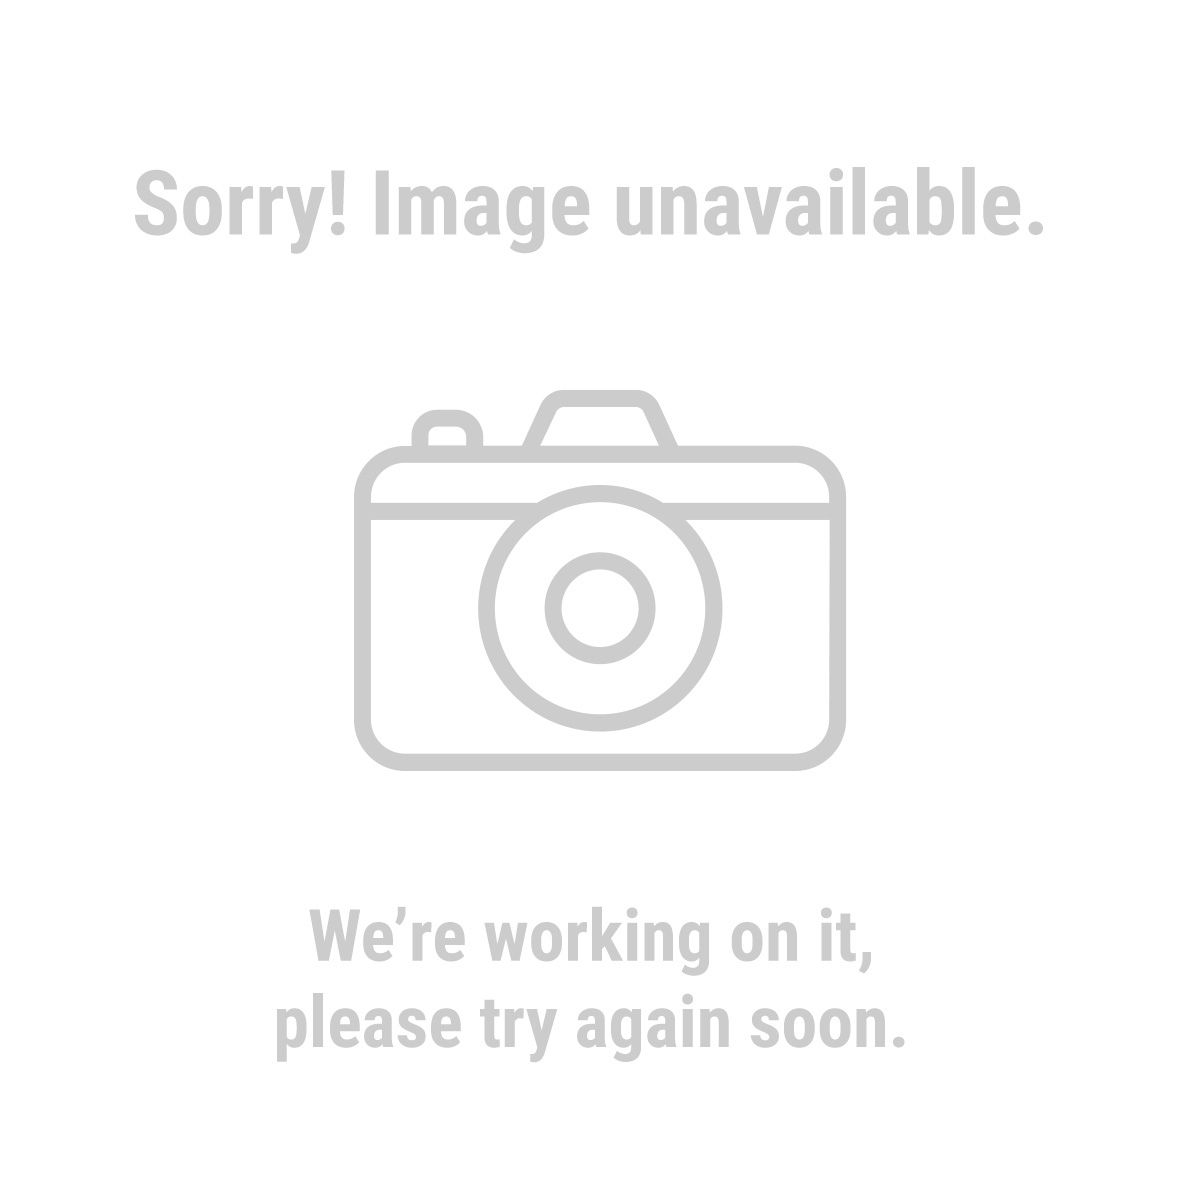 170 Amp MIG/Flux Wire Welder - 22 volts @ 110 amps